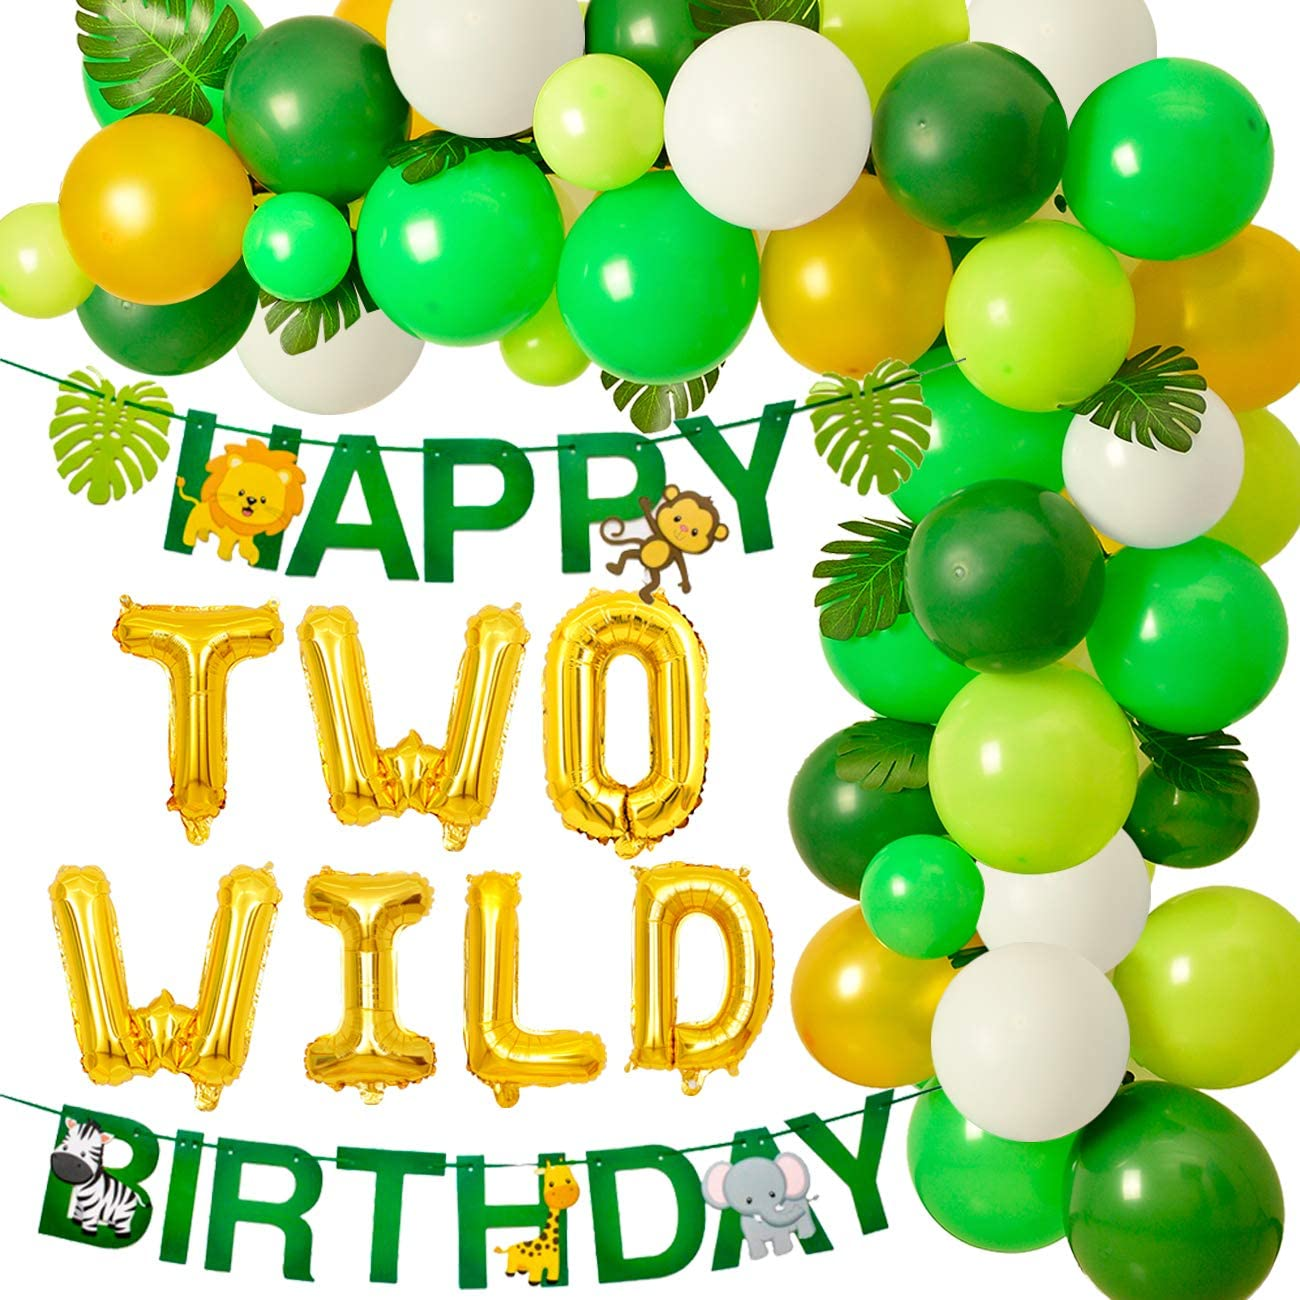 In Two The Wild Script Banner  Gold Glitter Cursive Second Birthday Sign  Wilderness Forest Theme Decor  Boy/'s Party  2nd Safari Jungle